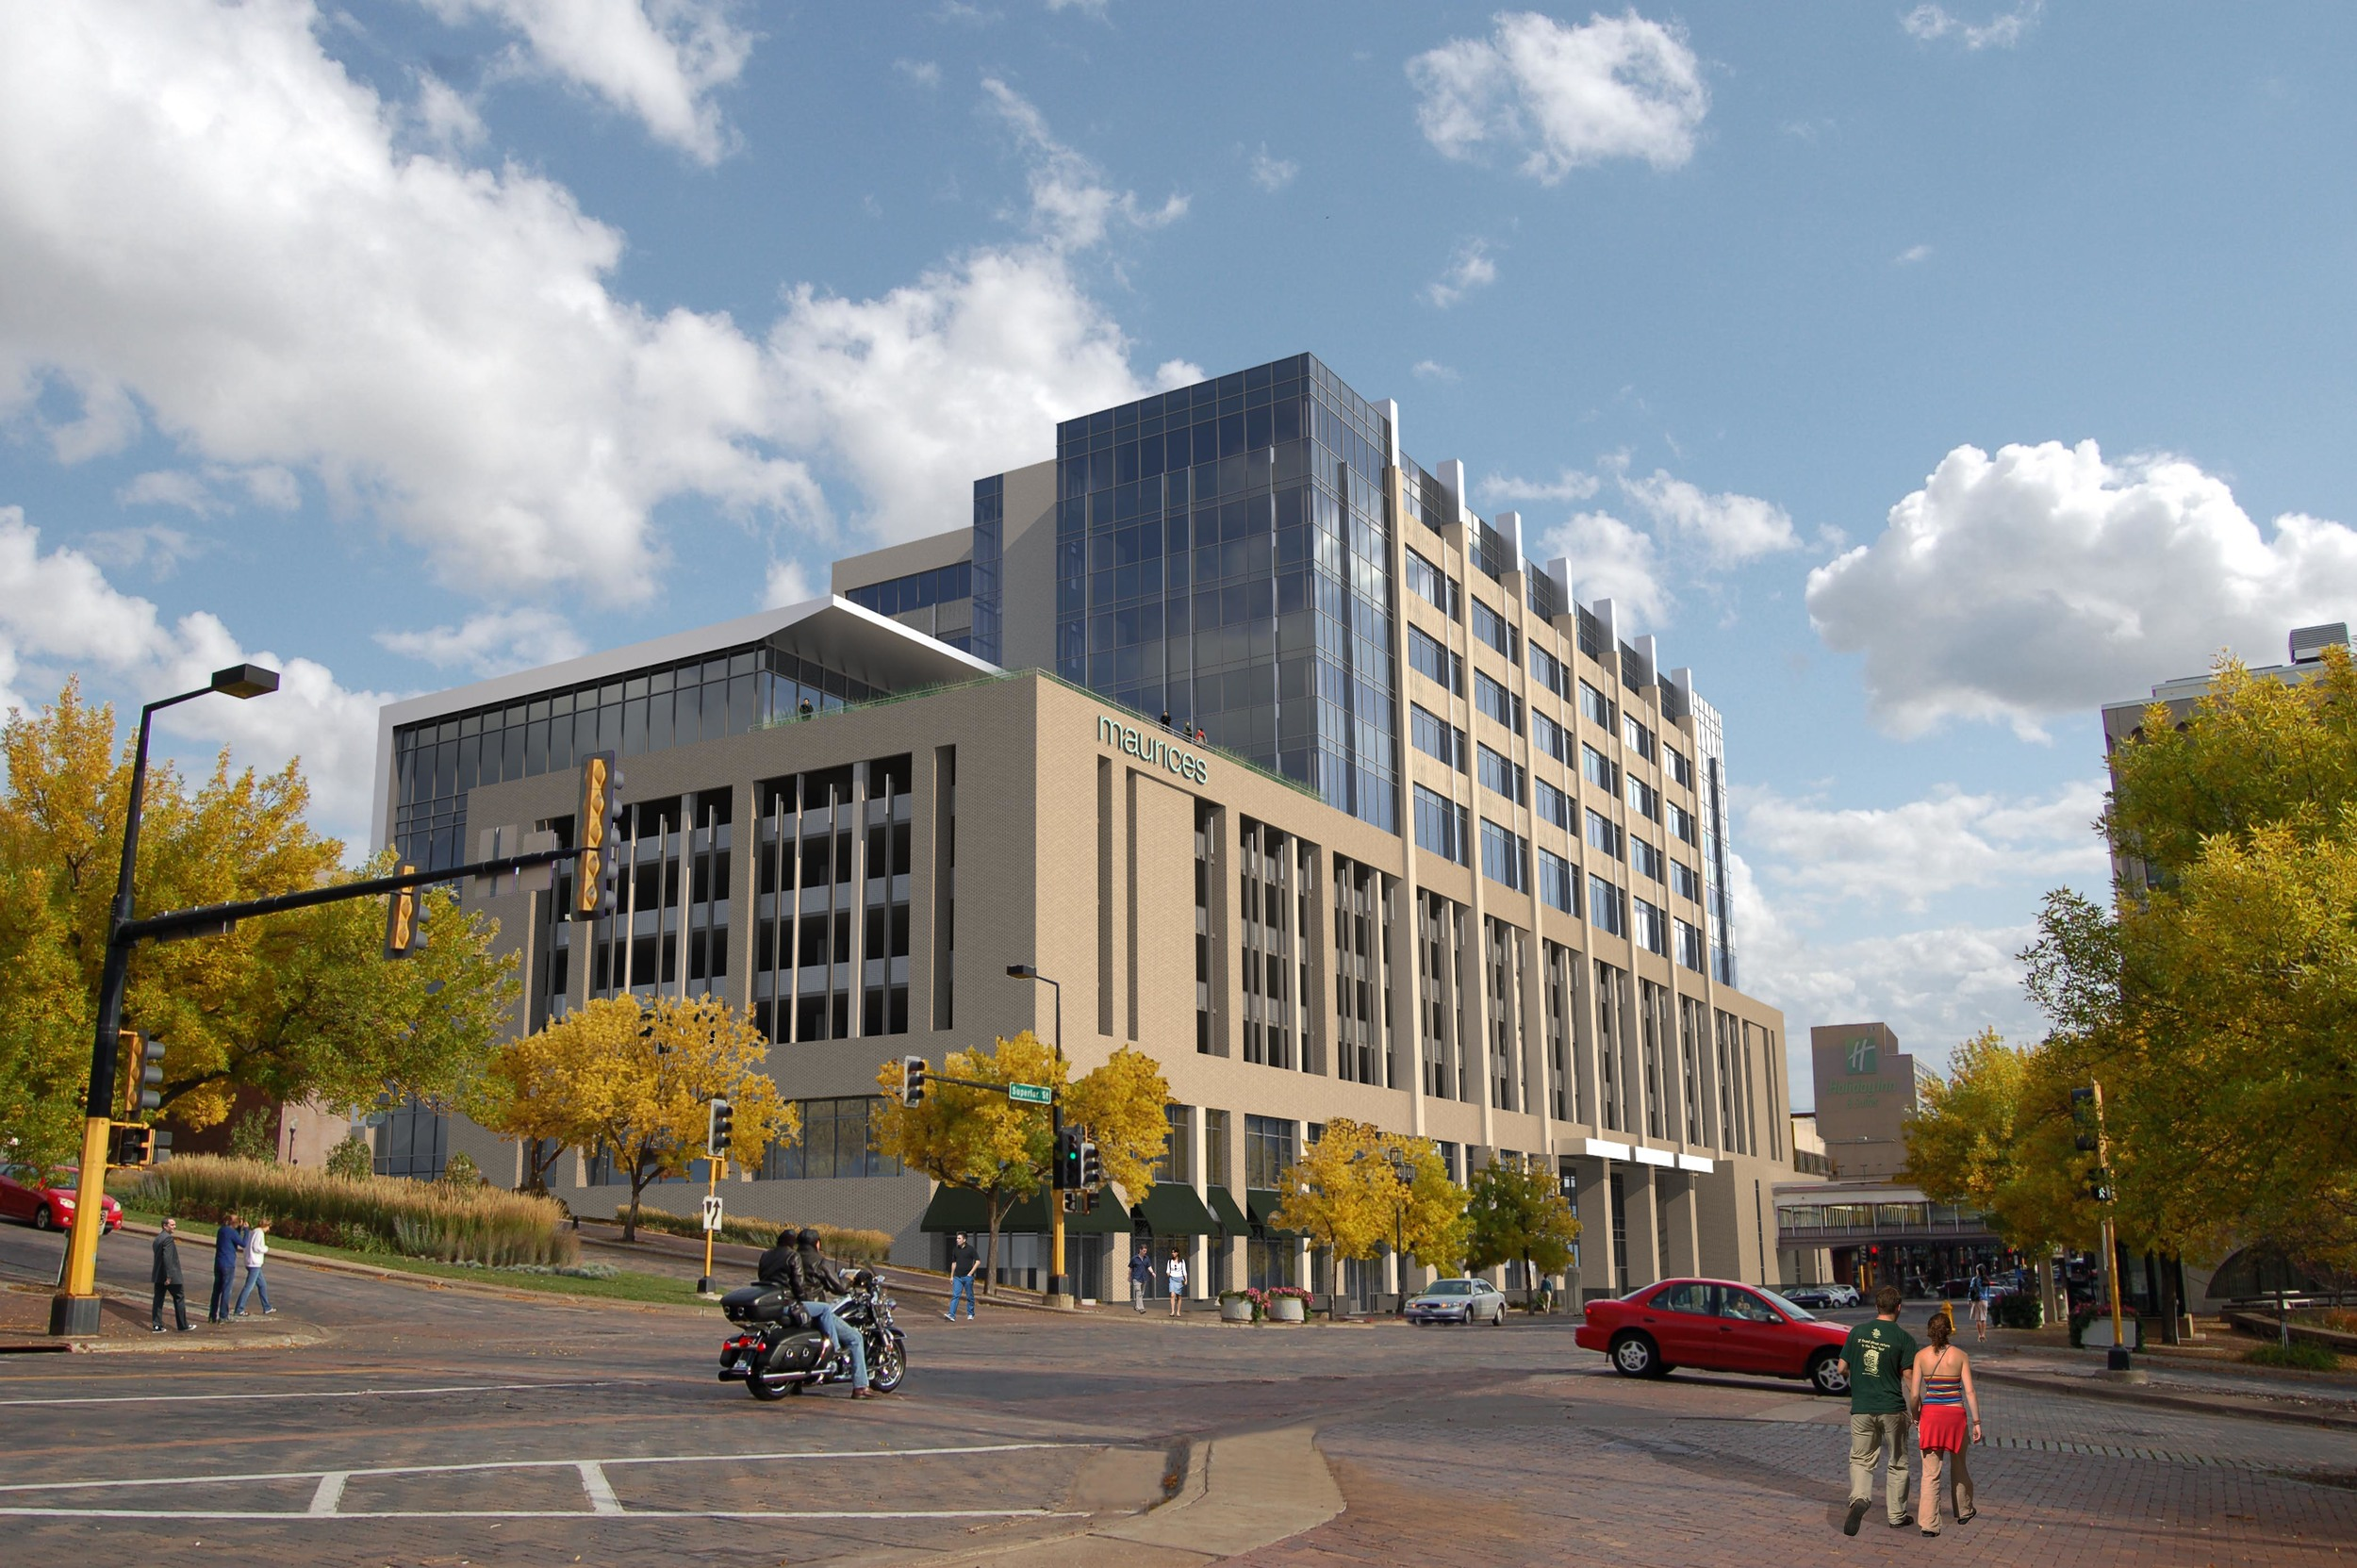 Rendering of what the new maurices Headquarters will look like.  (Image property of maurices)